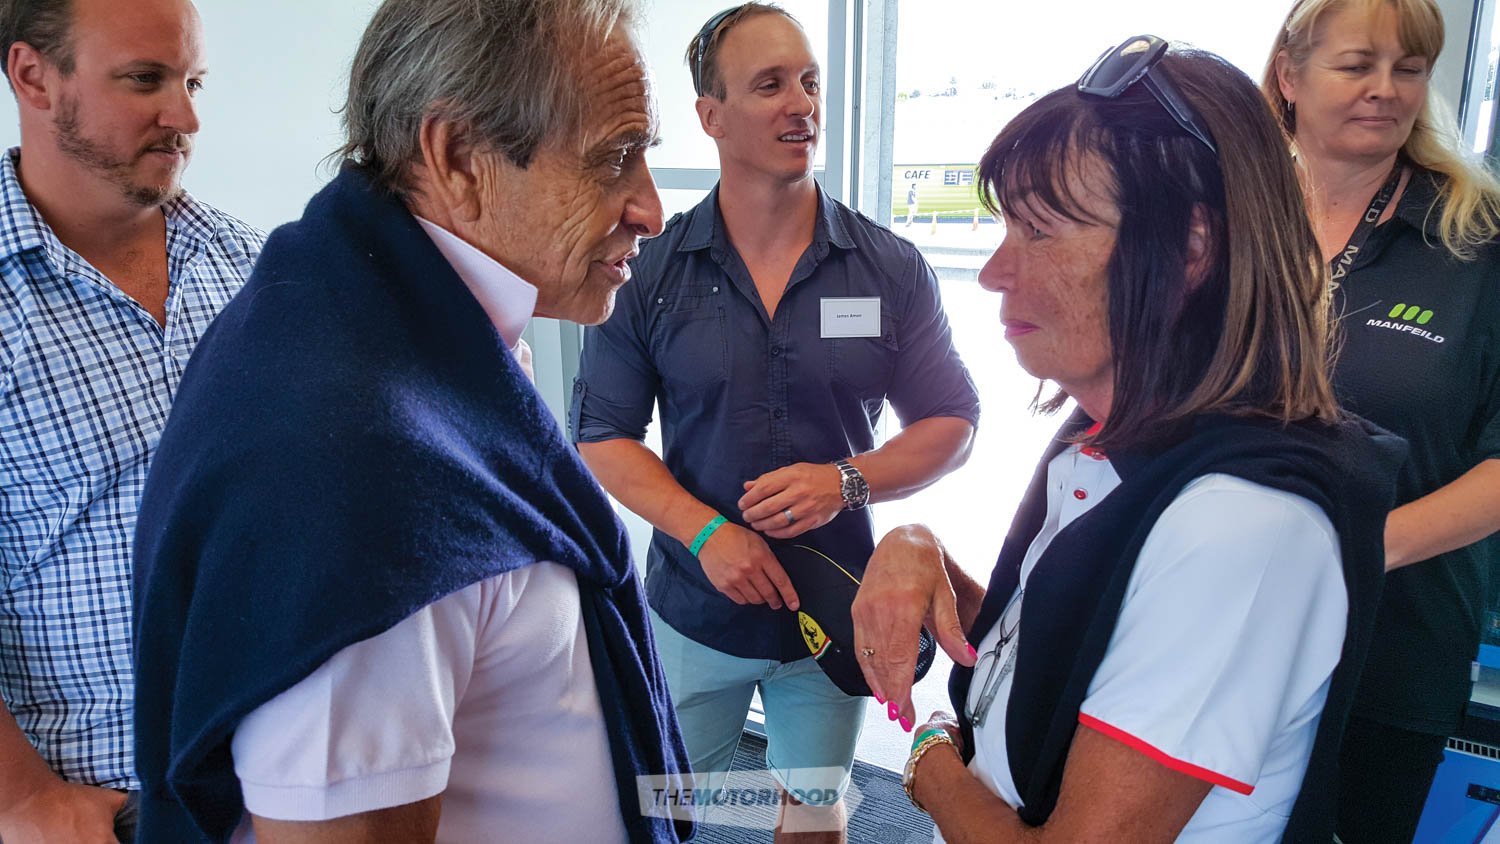 Jacky Ickx meets Tish Amon. In the background are Amon twins Alex and James and Manfeild CEO, Julie Keane